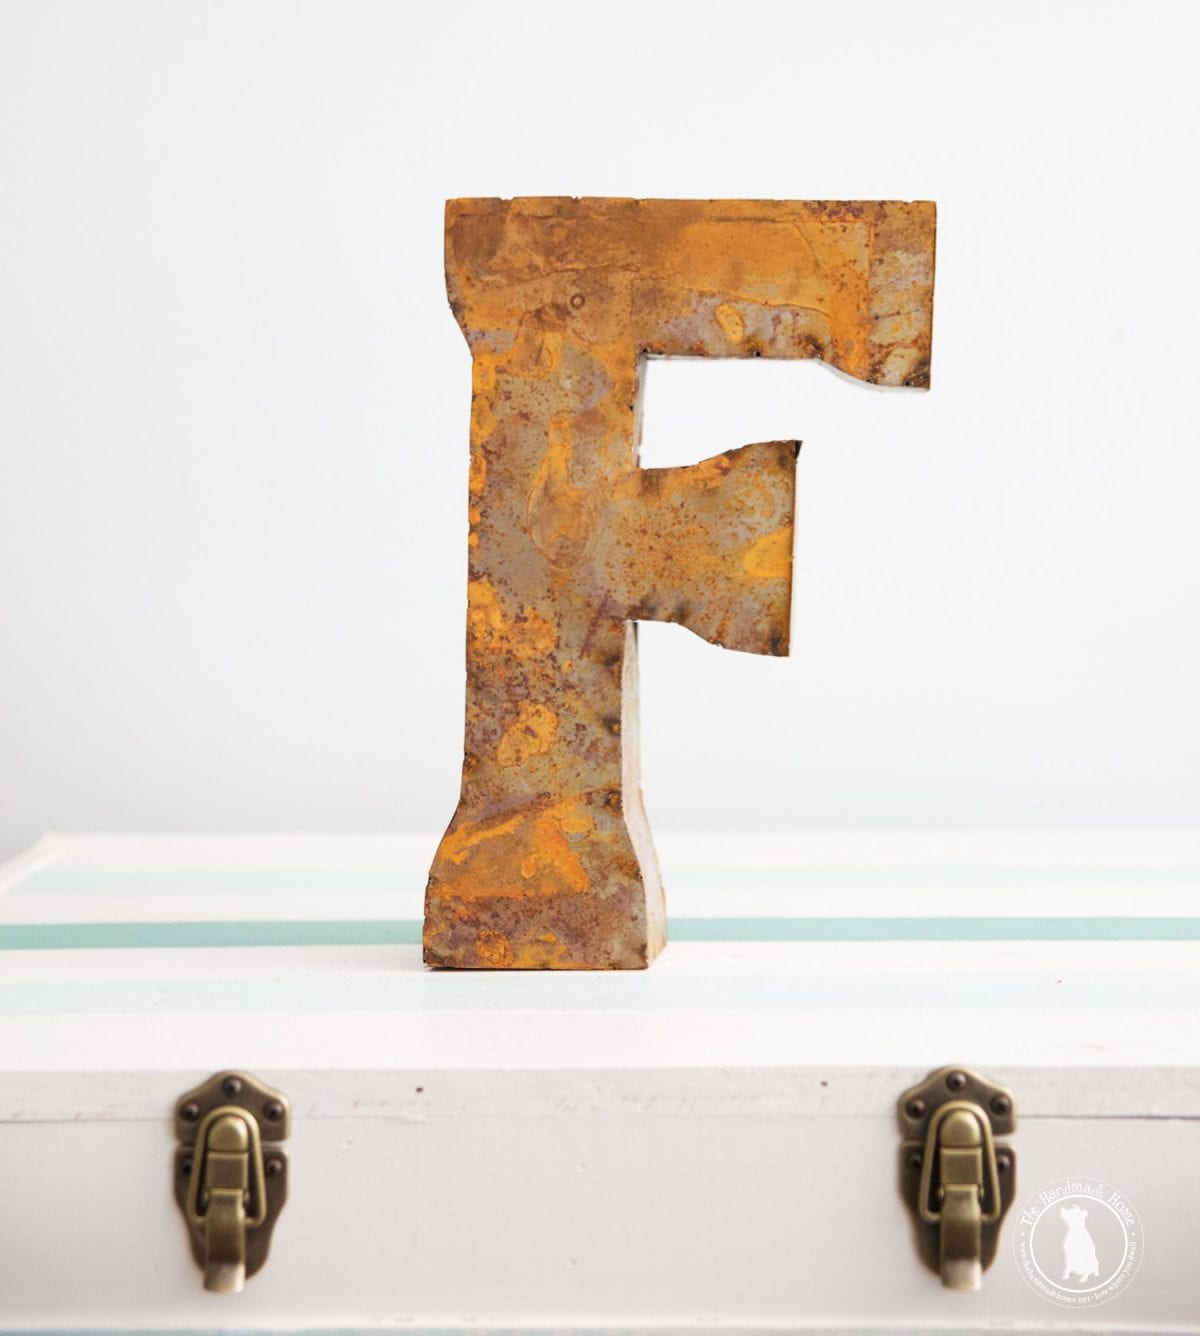 24 Inch Metal Letters Alphafantastical Metal Letters 24 Inch Height  The Handmade Home